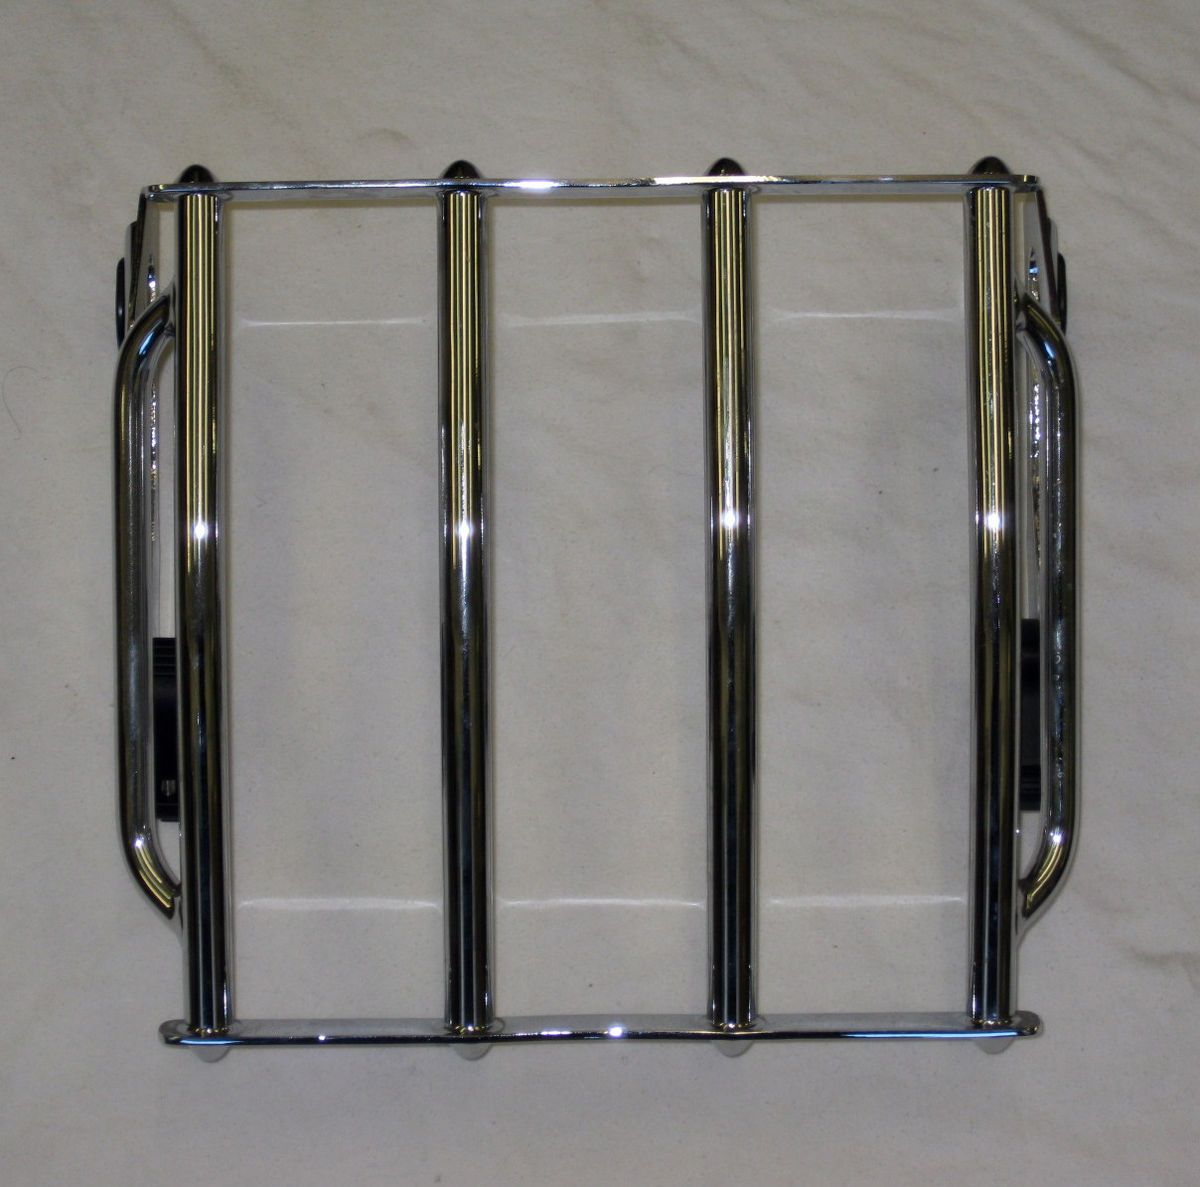 Harley Davidson Touring Detachable Solo Luggage Rack Used